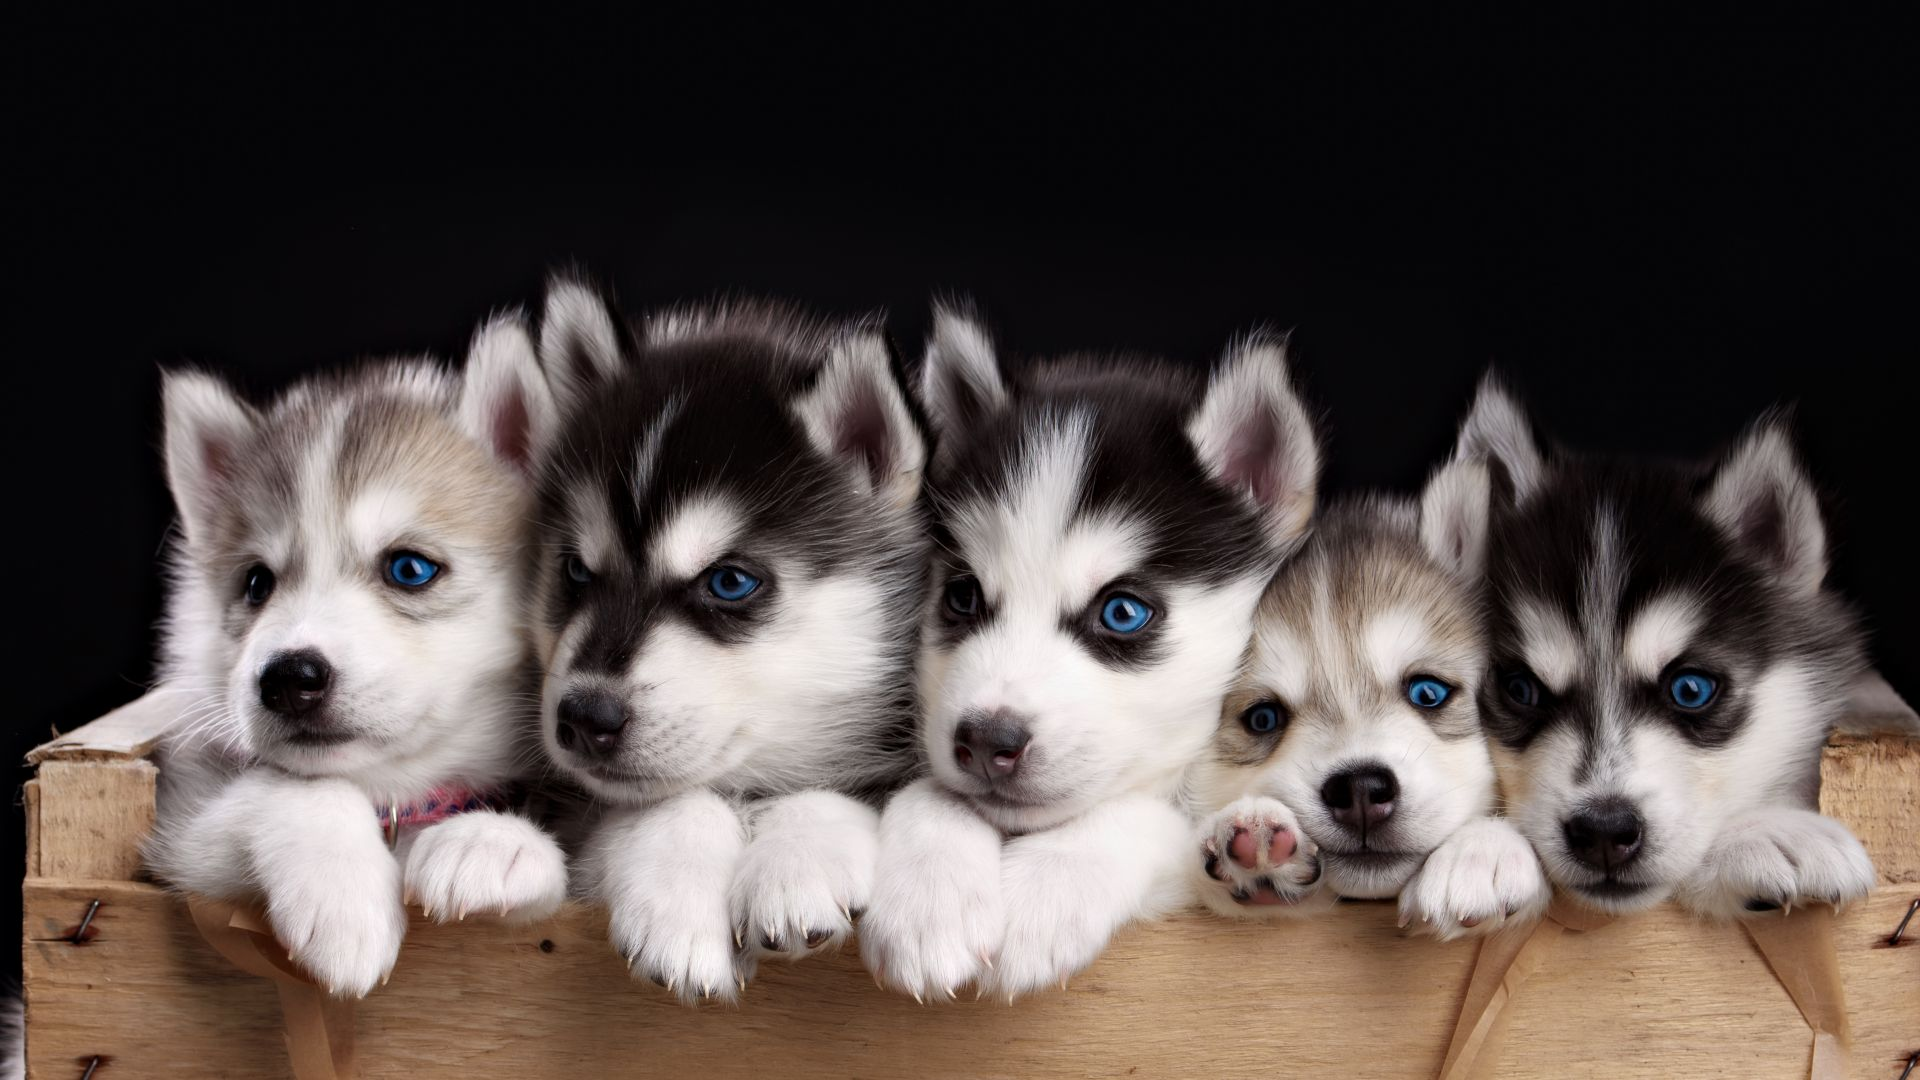 Husky, puppy, cute animals, 4k (horizontal)